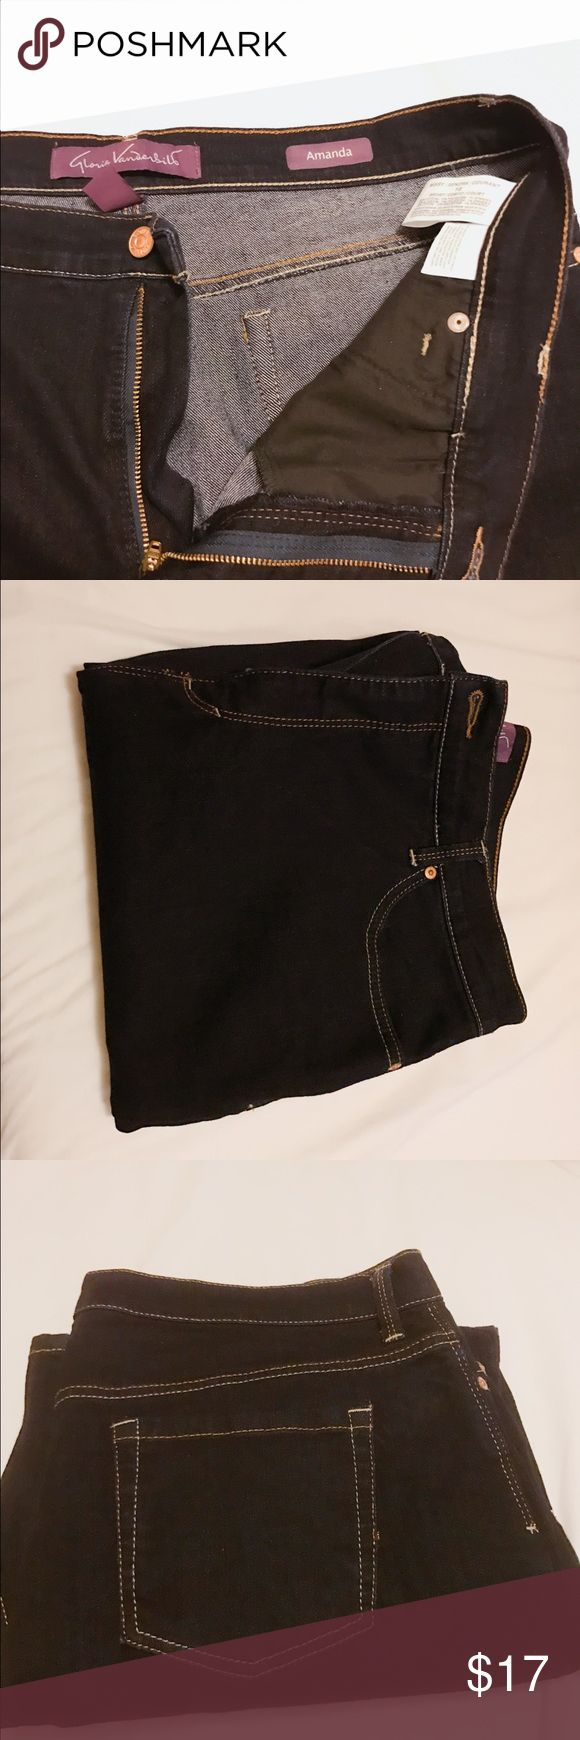 Skinny Amanda jeans brand new These are brand new from the store been sitting in my closet skinny leg - dark blue color Gloria Vanderbilt Jeans Skinny